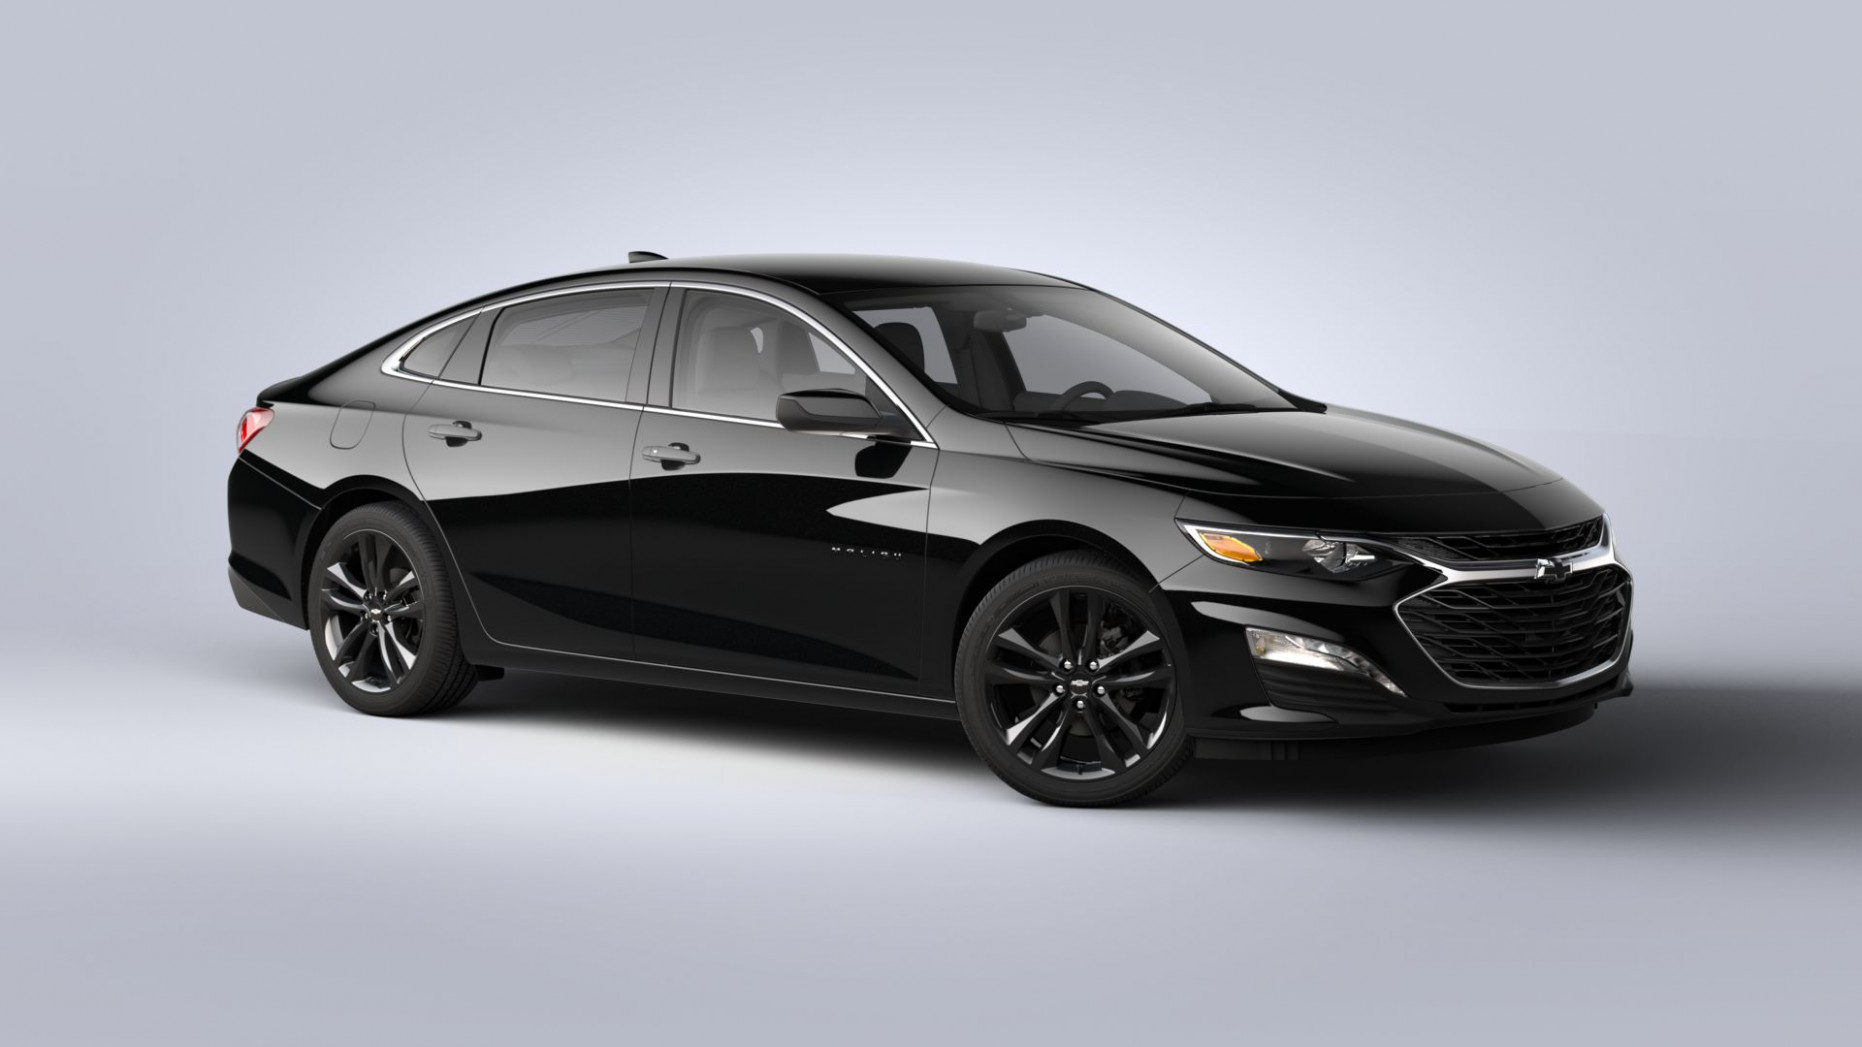 8 Chevrolet Malibu Adds New Midnight Edition Package | GM Authority - 2020 chevrolet malibu ss